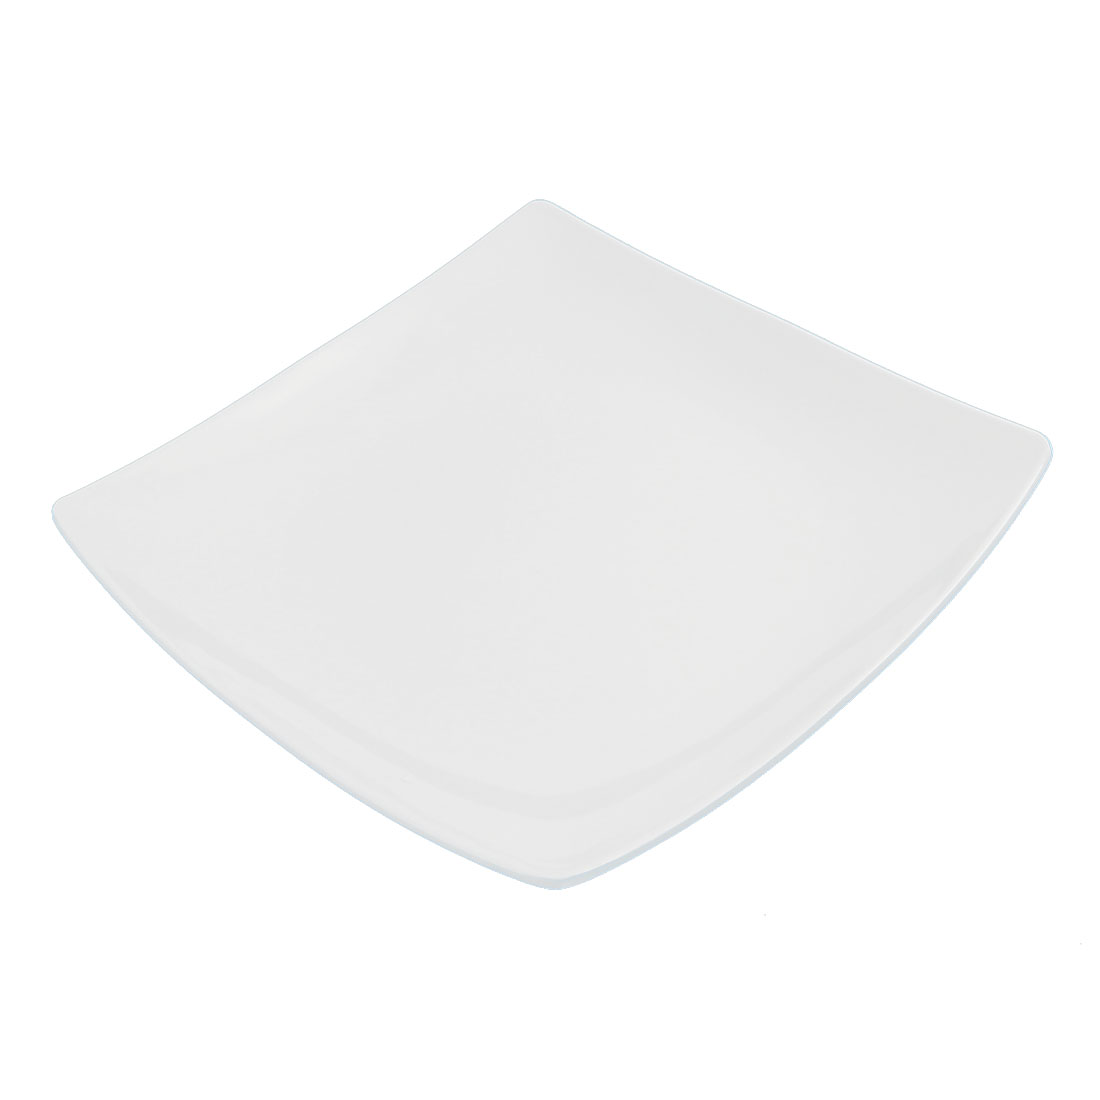 "Restaurant Dinnerware Plastic Square Shaped Steak Dish Plate 9.5"" x 9.5"""